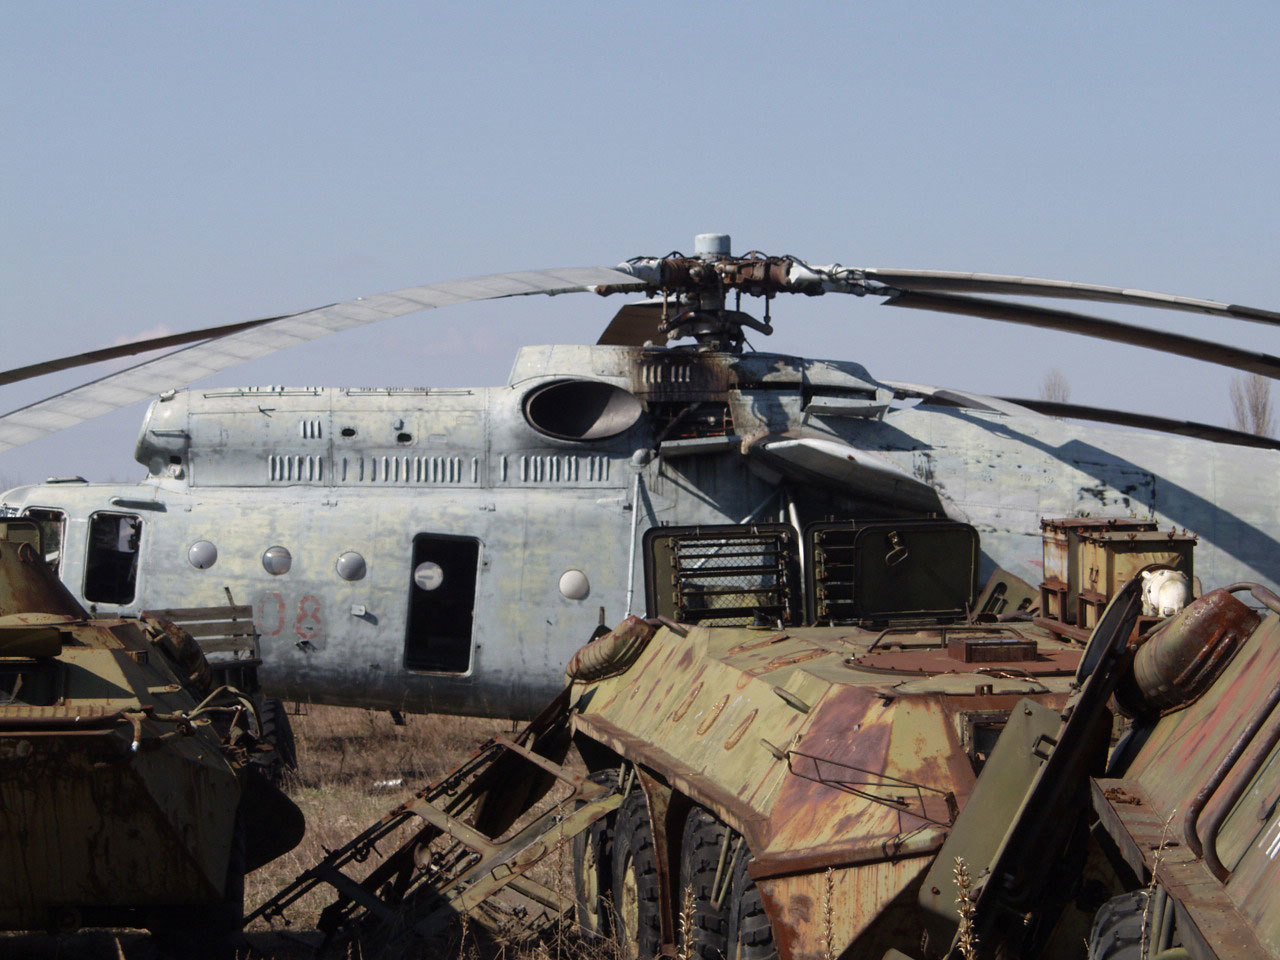 Helicopters Chernobyl vehicles mi HD Wallpaper